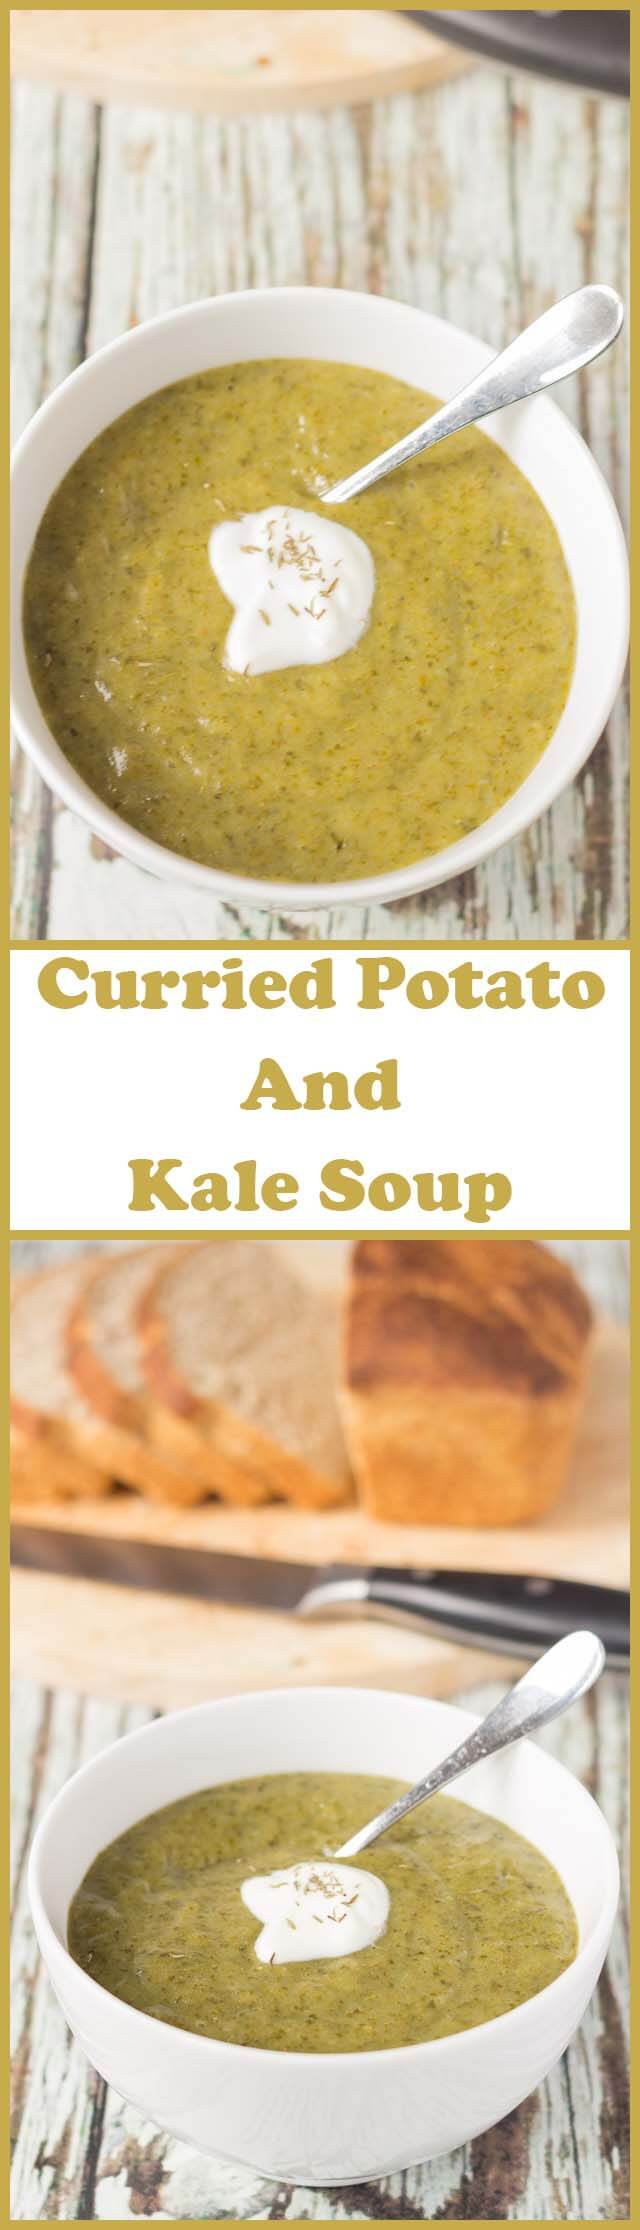 Curried potato and kale soup is a delicious and nutritious budget soup. With a beautiful creamy texture and a hint of curry, this filling soup will not leave you still feeling hungry.